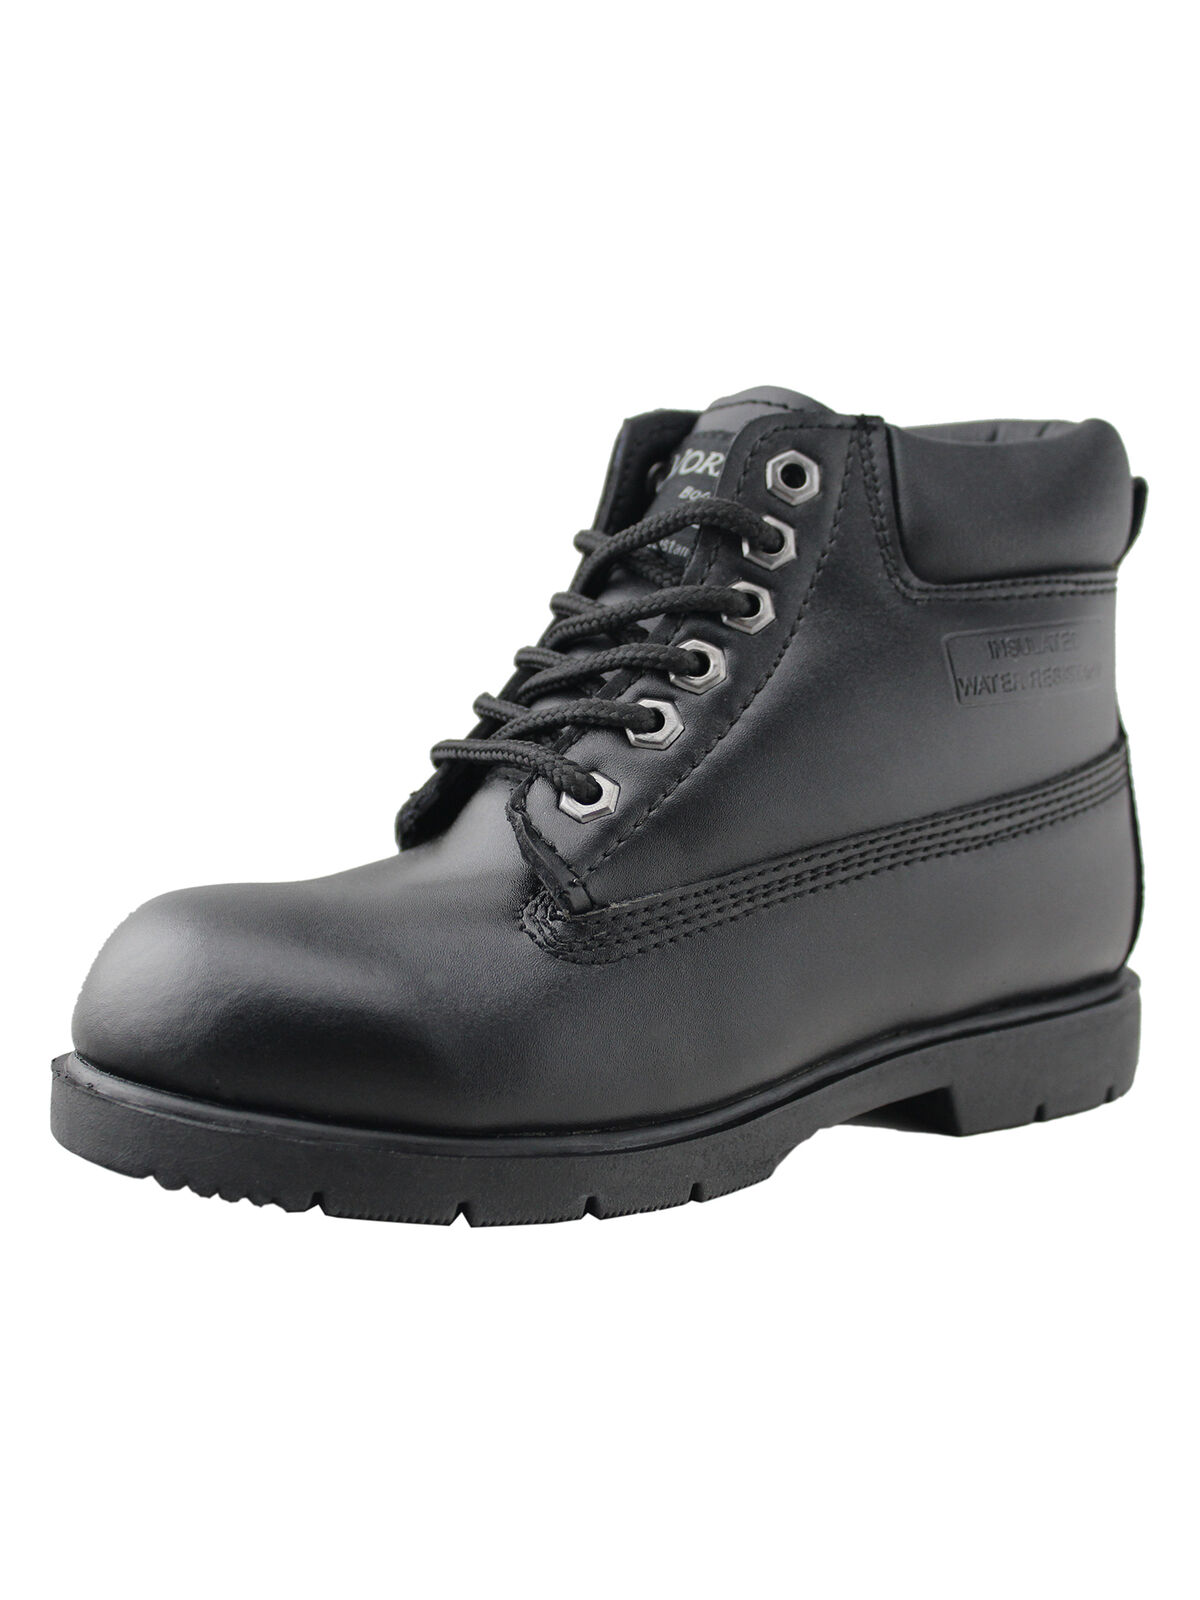 boys water resistant leather work shoes casual